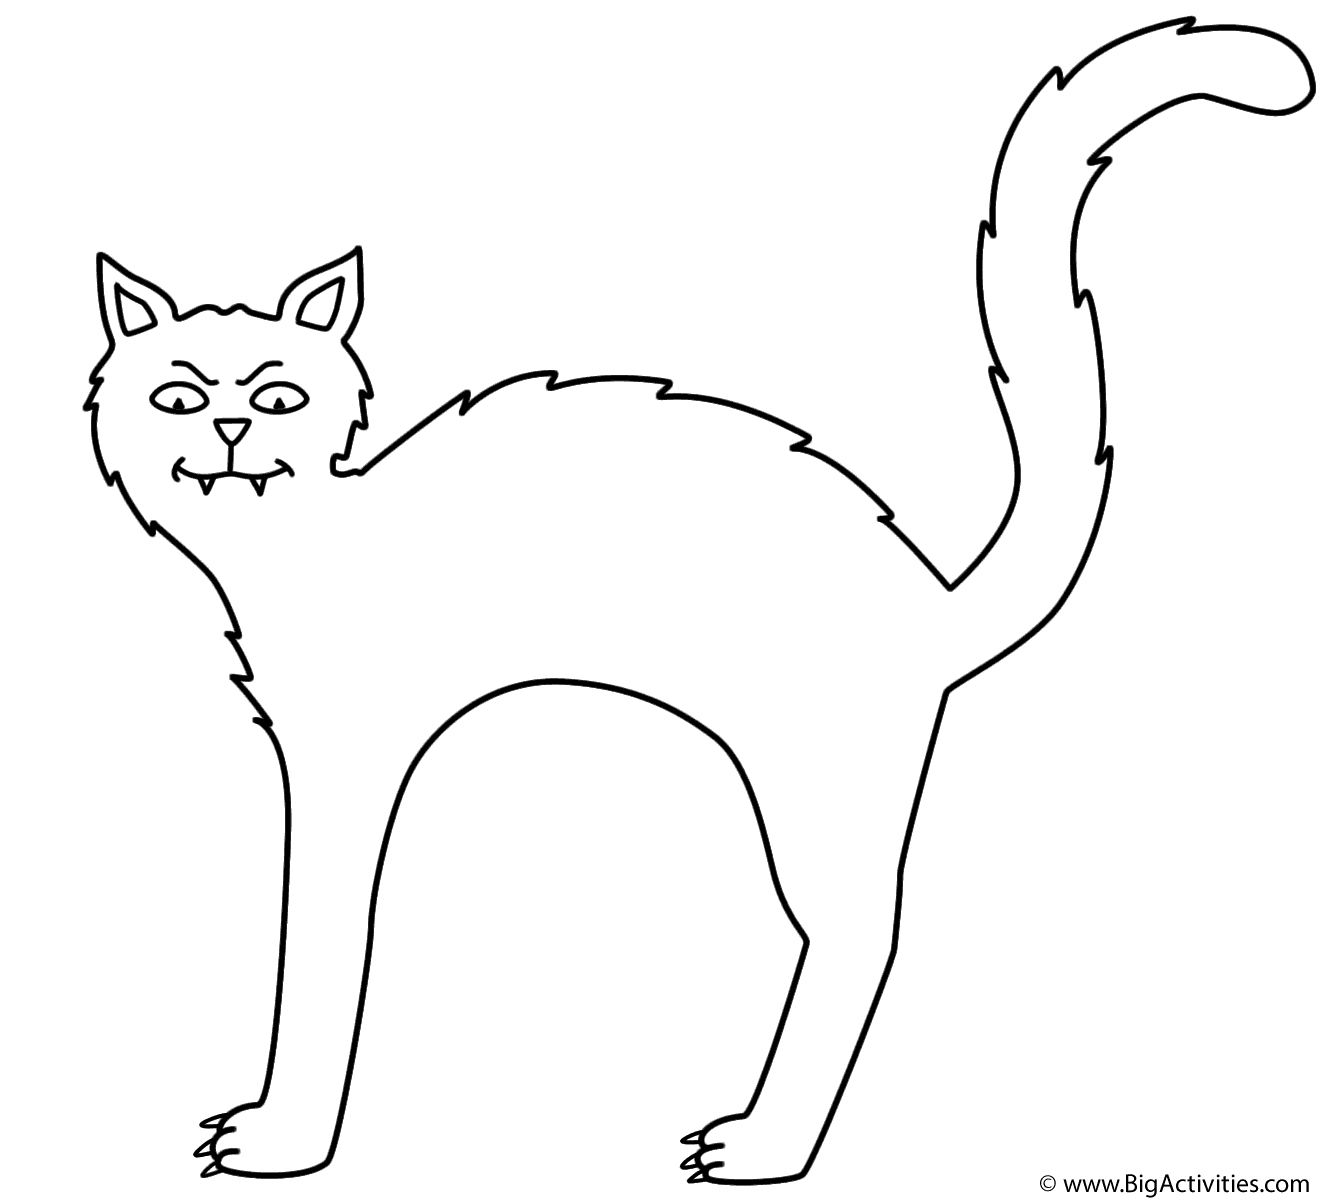 printable cat pictures to color cats coloring pages download and print cats coloring pages cat printable to pictures color